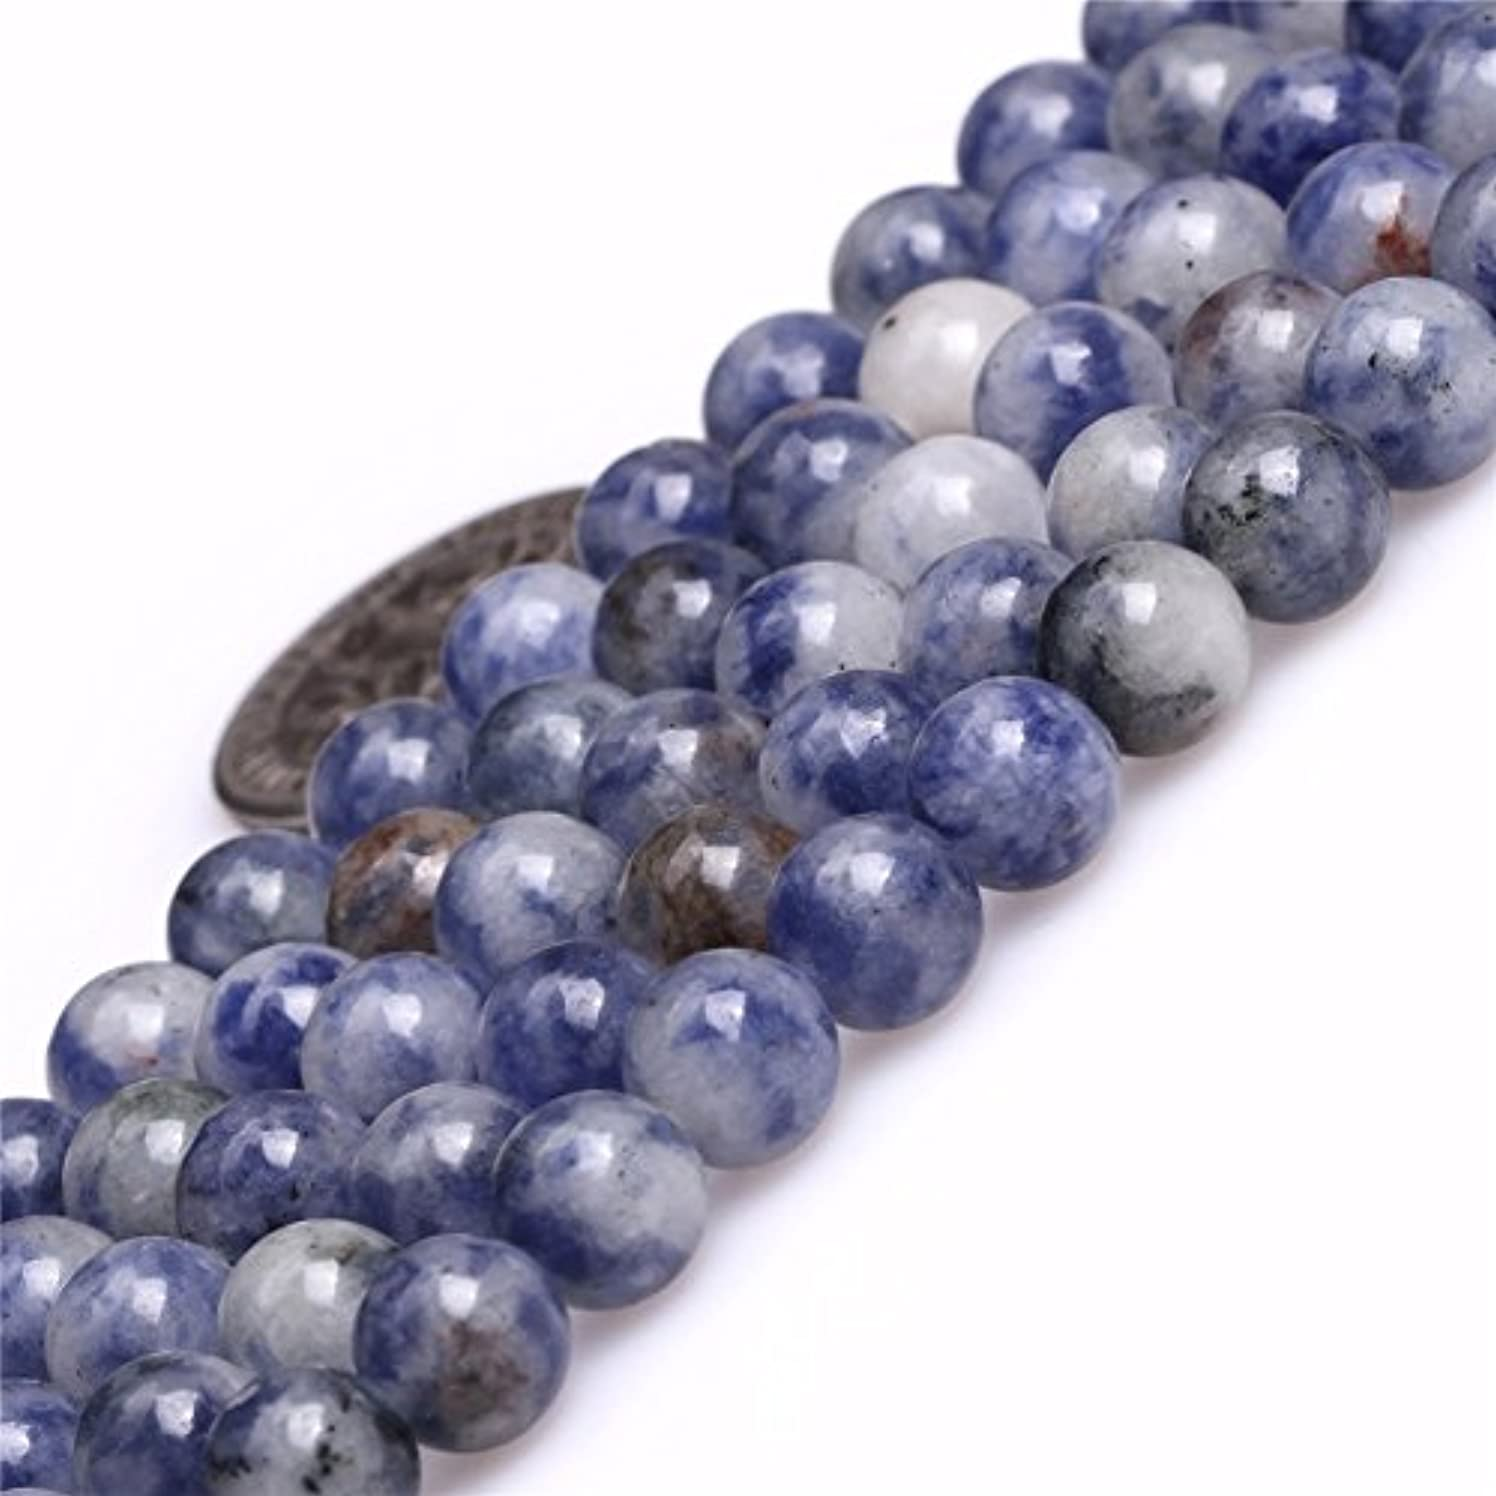 Sodalite Beads for Jewelry Making Natural Gemstone Semi Precious 6mm Round 15